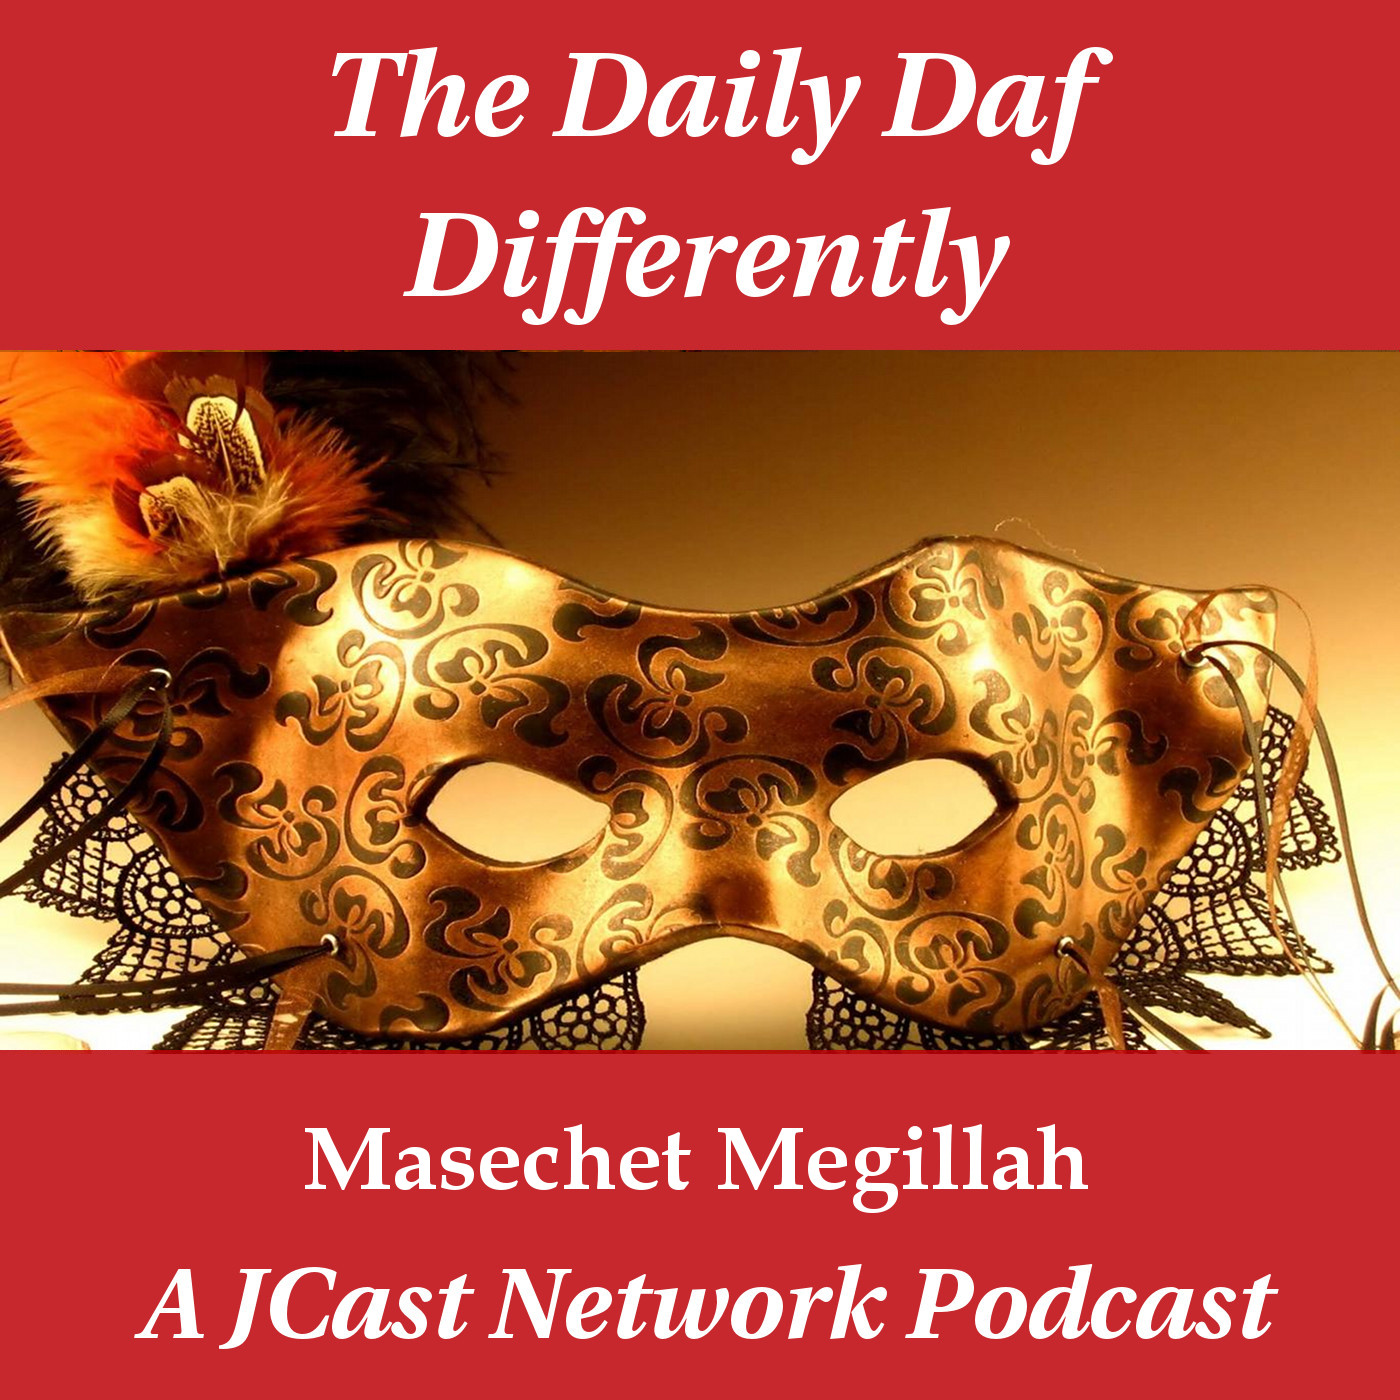 Daily Daf Differently: Masechet Megillah